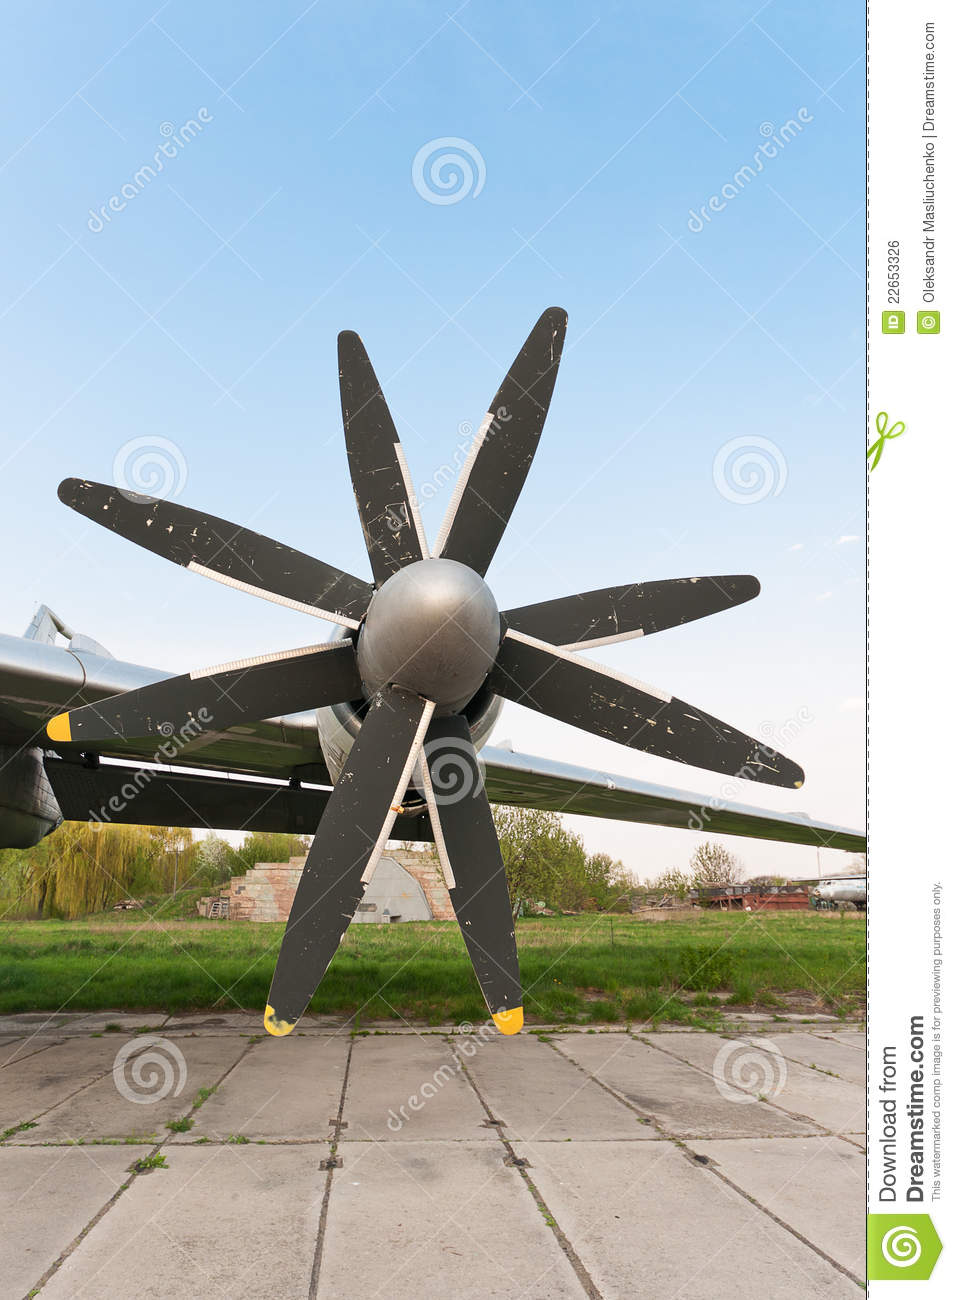 Counter Rotating Propellers : Propellers royalty free stock image